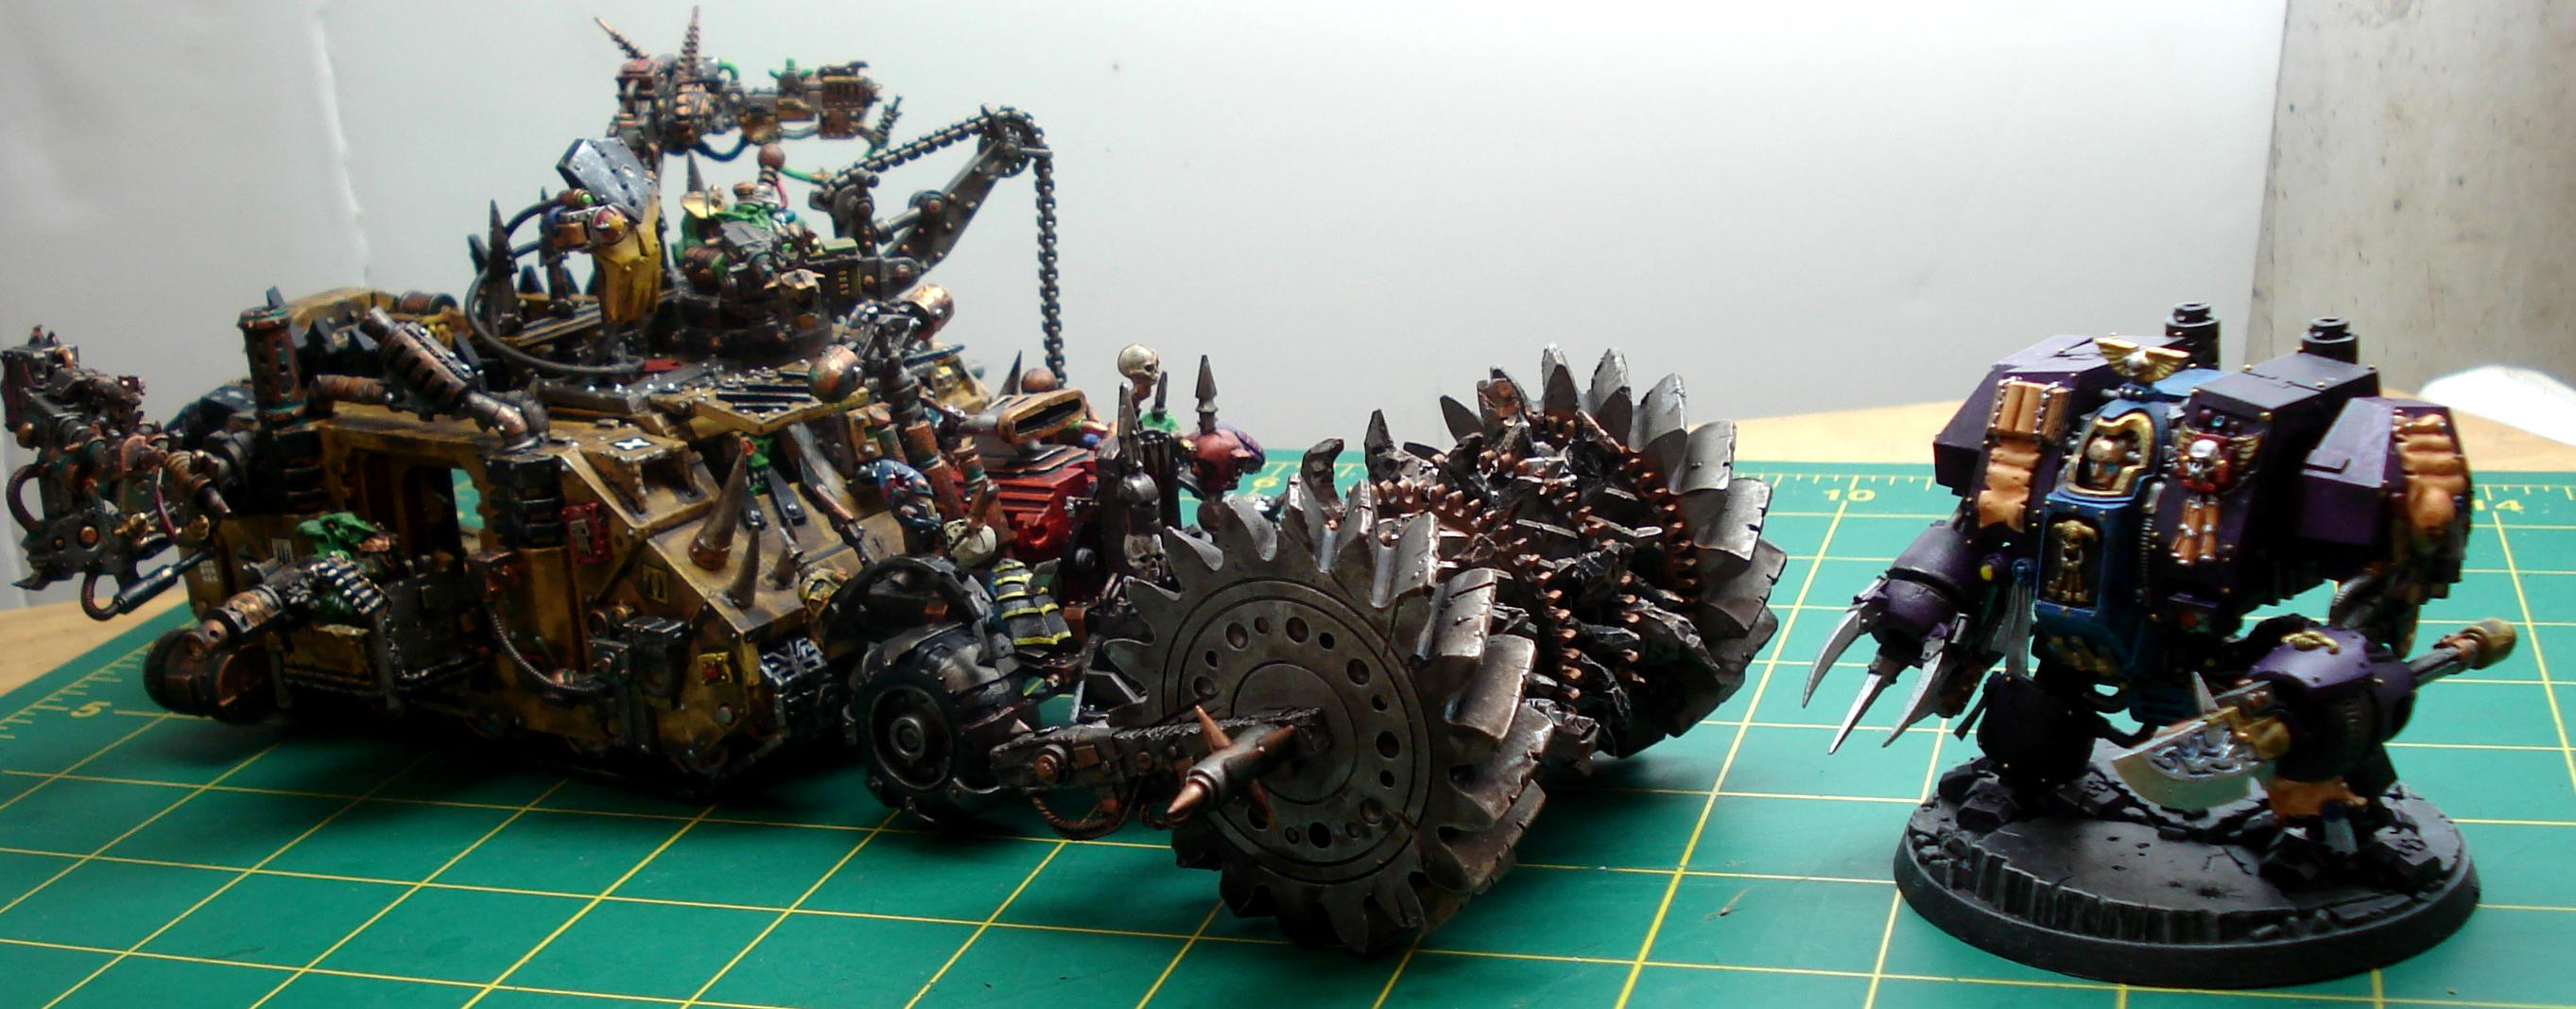 Bad, Bad Moons, Big, Bot, Custom, Dakka Dakka, Deff, Dred, Drinker, Forge World, Gretchin, Grots, Junka, Kit, Meka, Mekboy, Moon, Orcs, Orks, Power, Runt, Runtbot, Soul, Space, Warboss